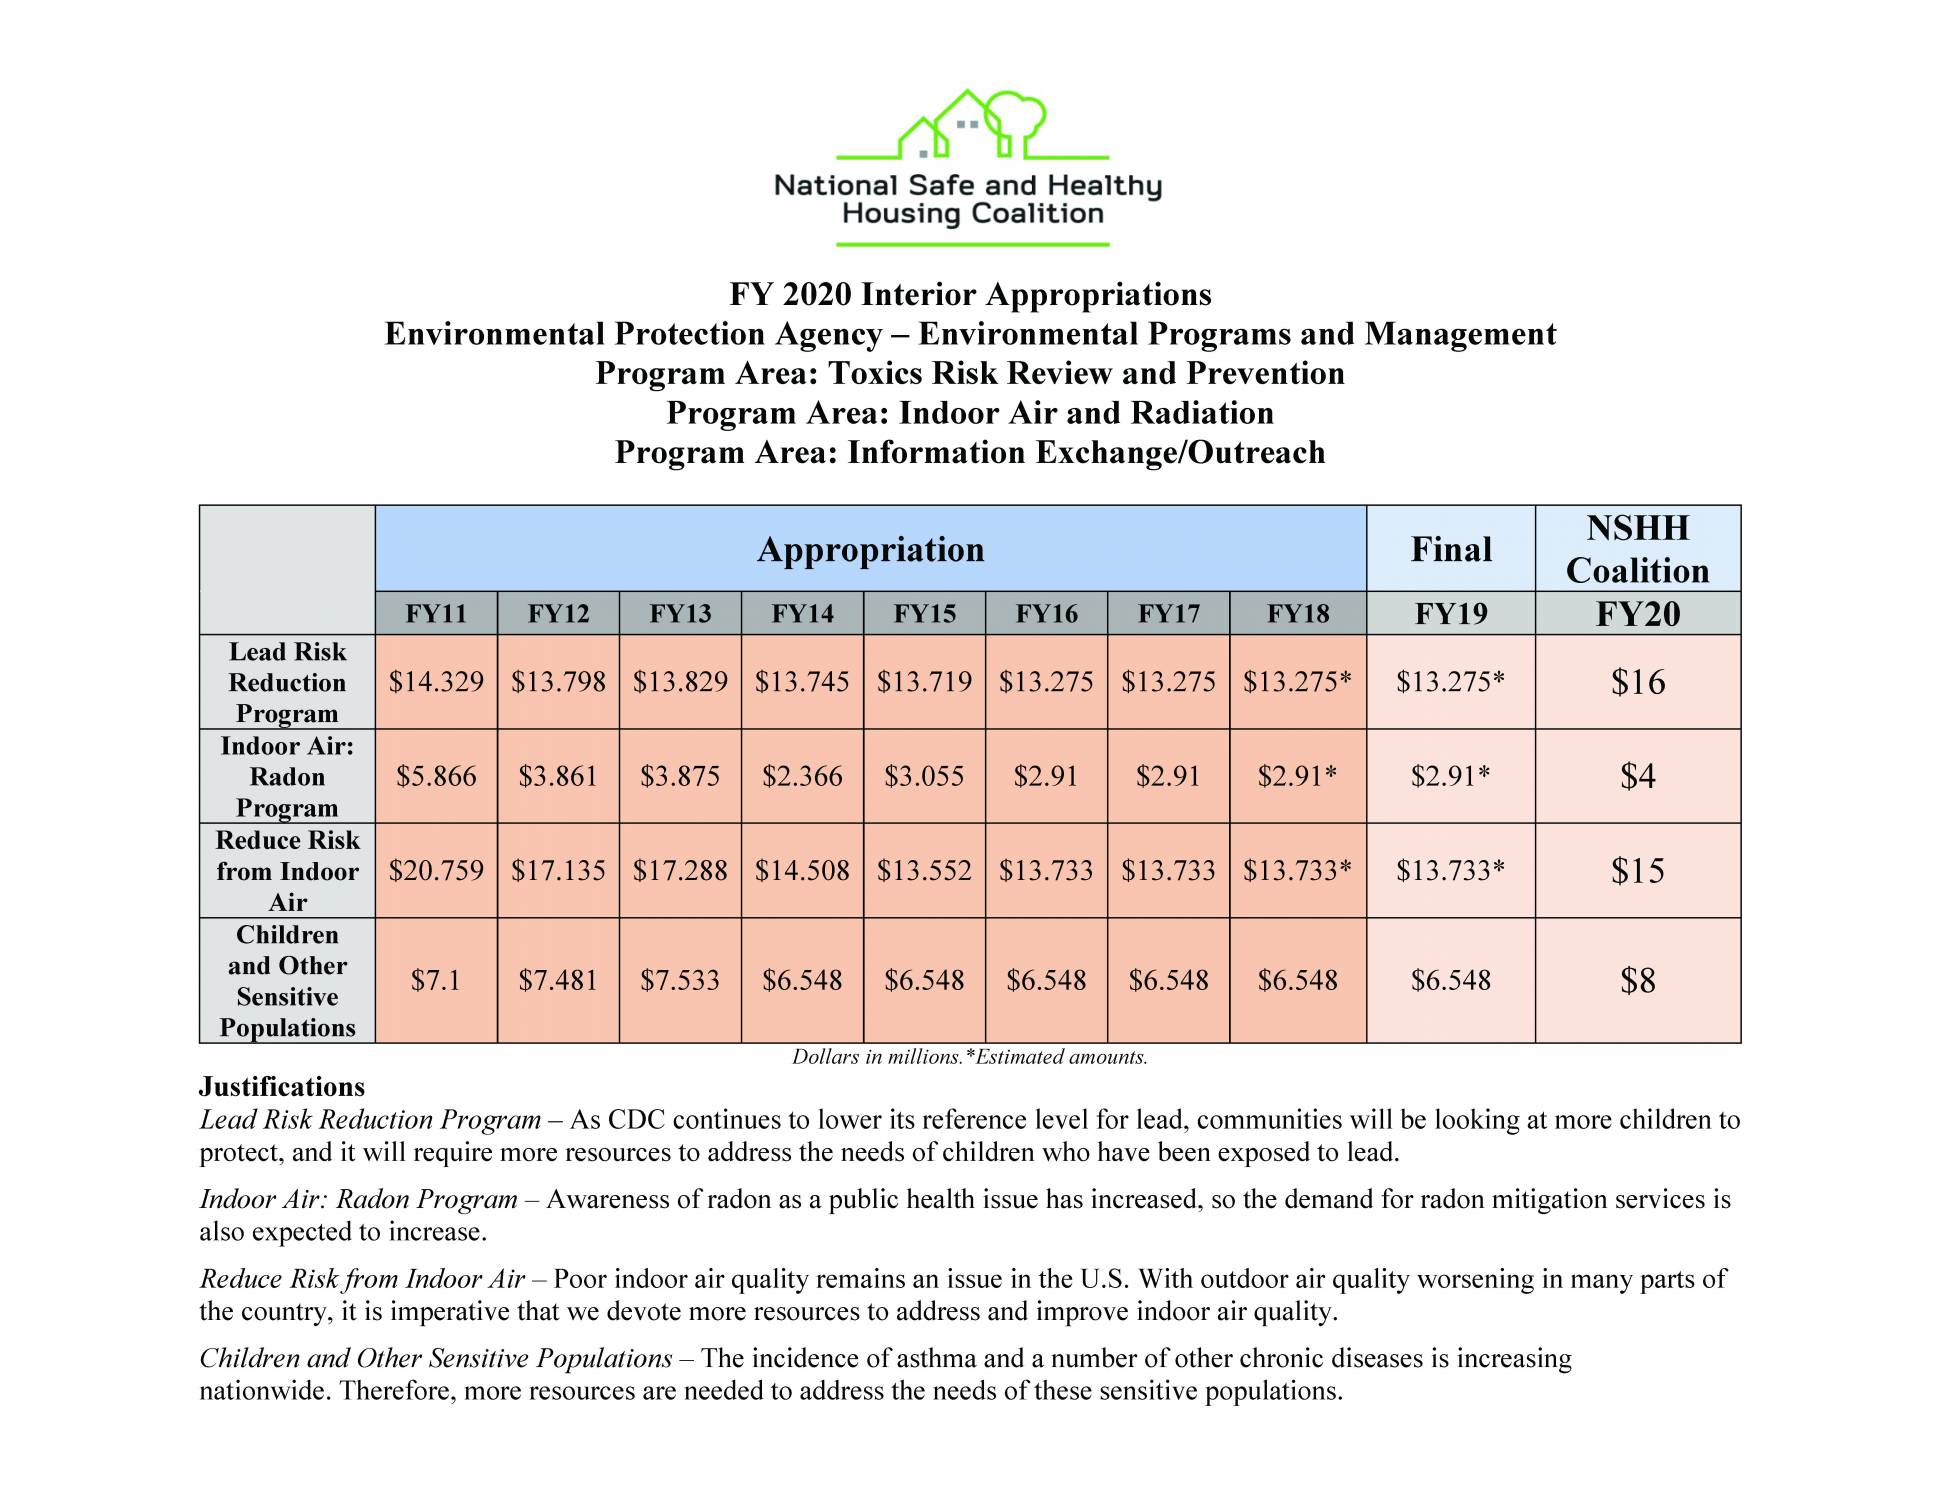 FY 2020 Interior Appropriations: Environmental Programs and Management